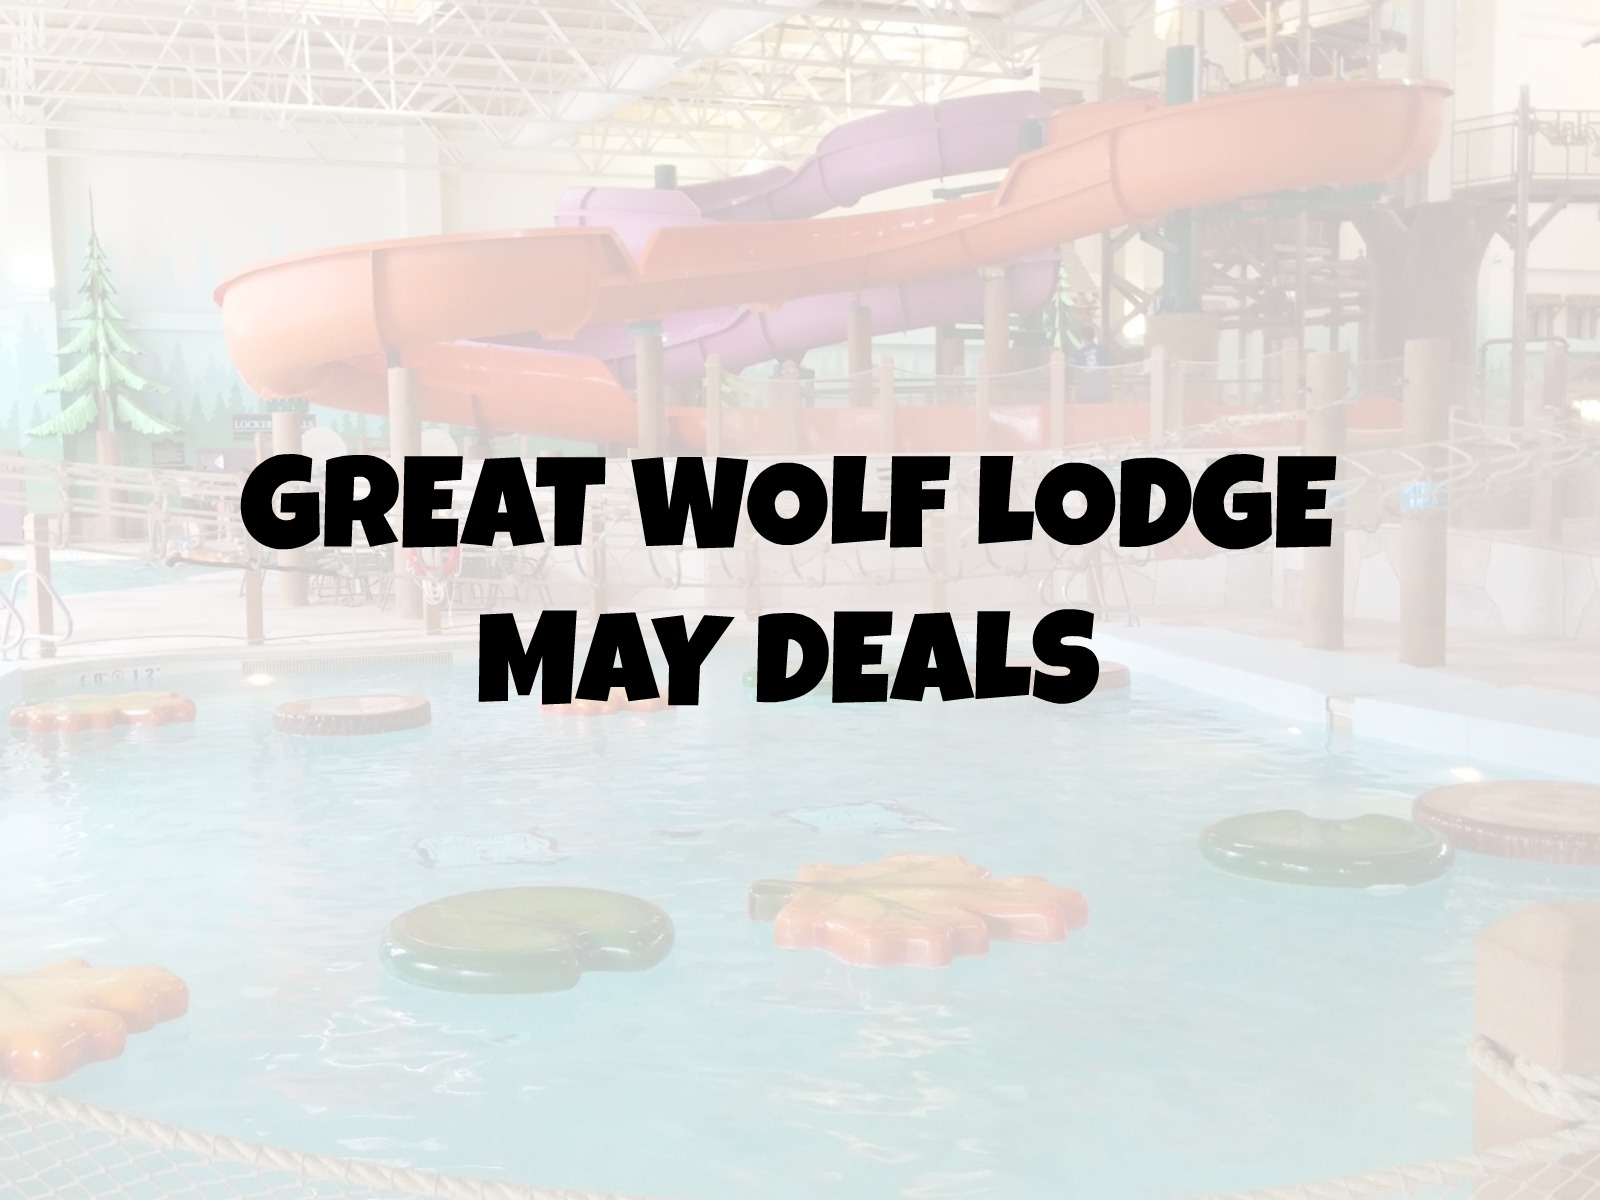 May Great Wolf Lodge Deals (This One Is Correct)